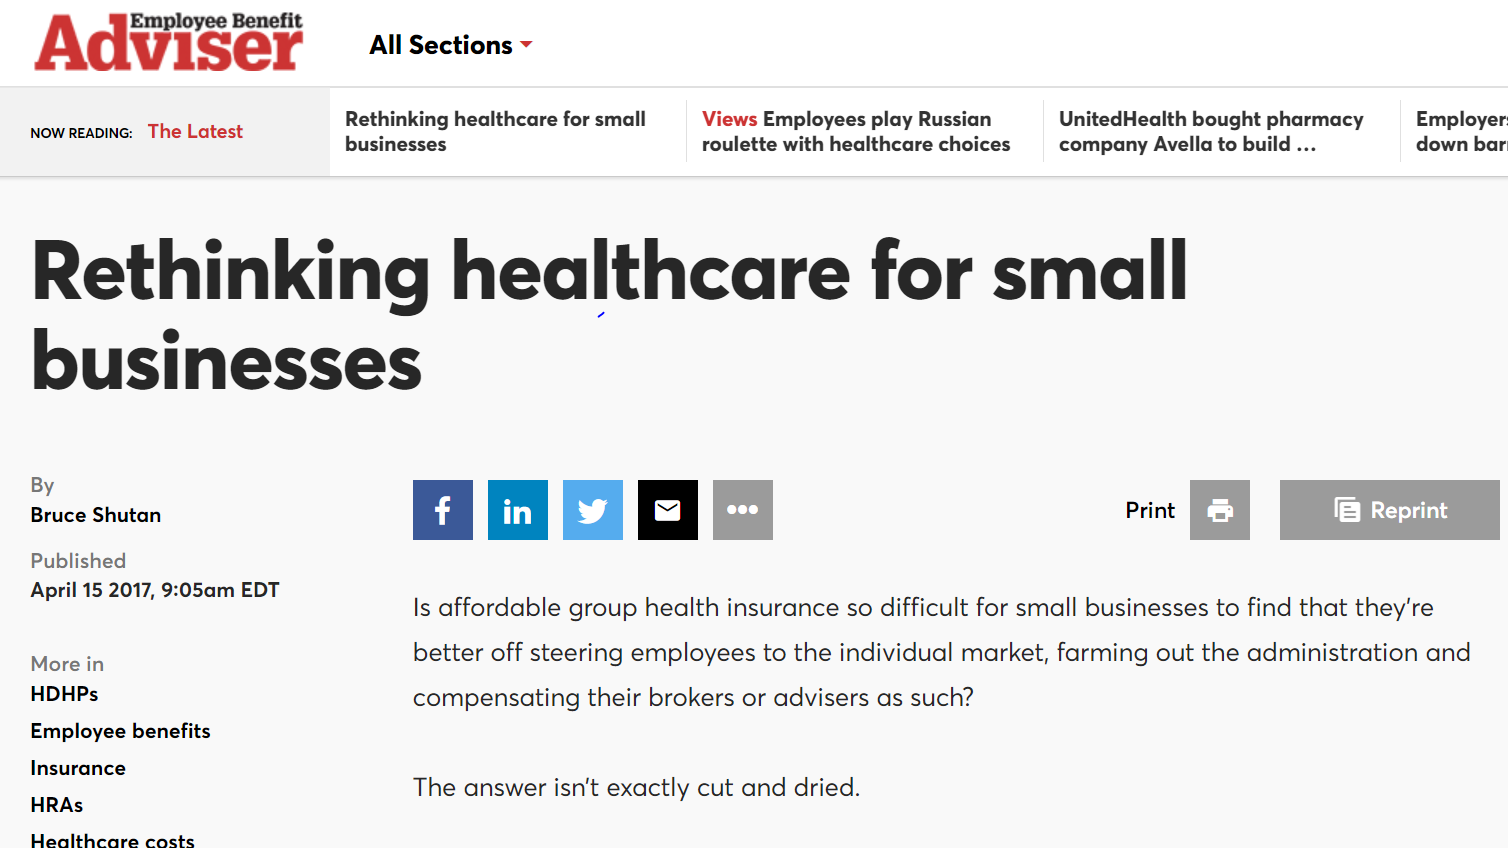 Rethinking Healthcare for Small Businesses